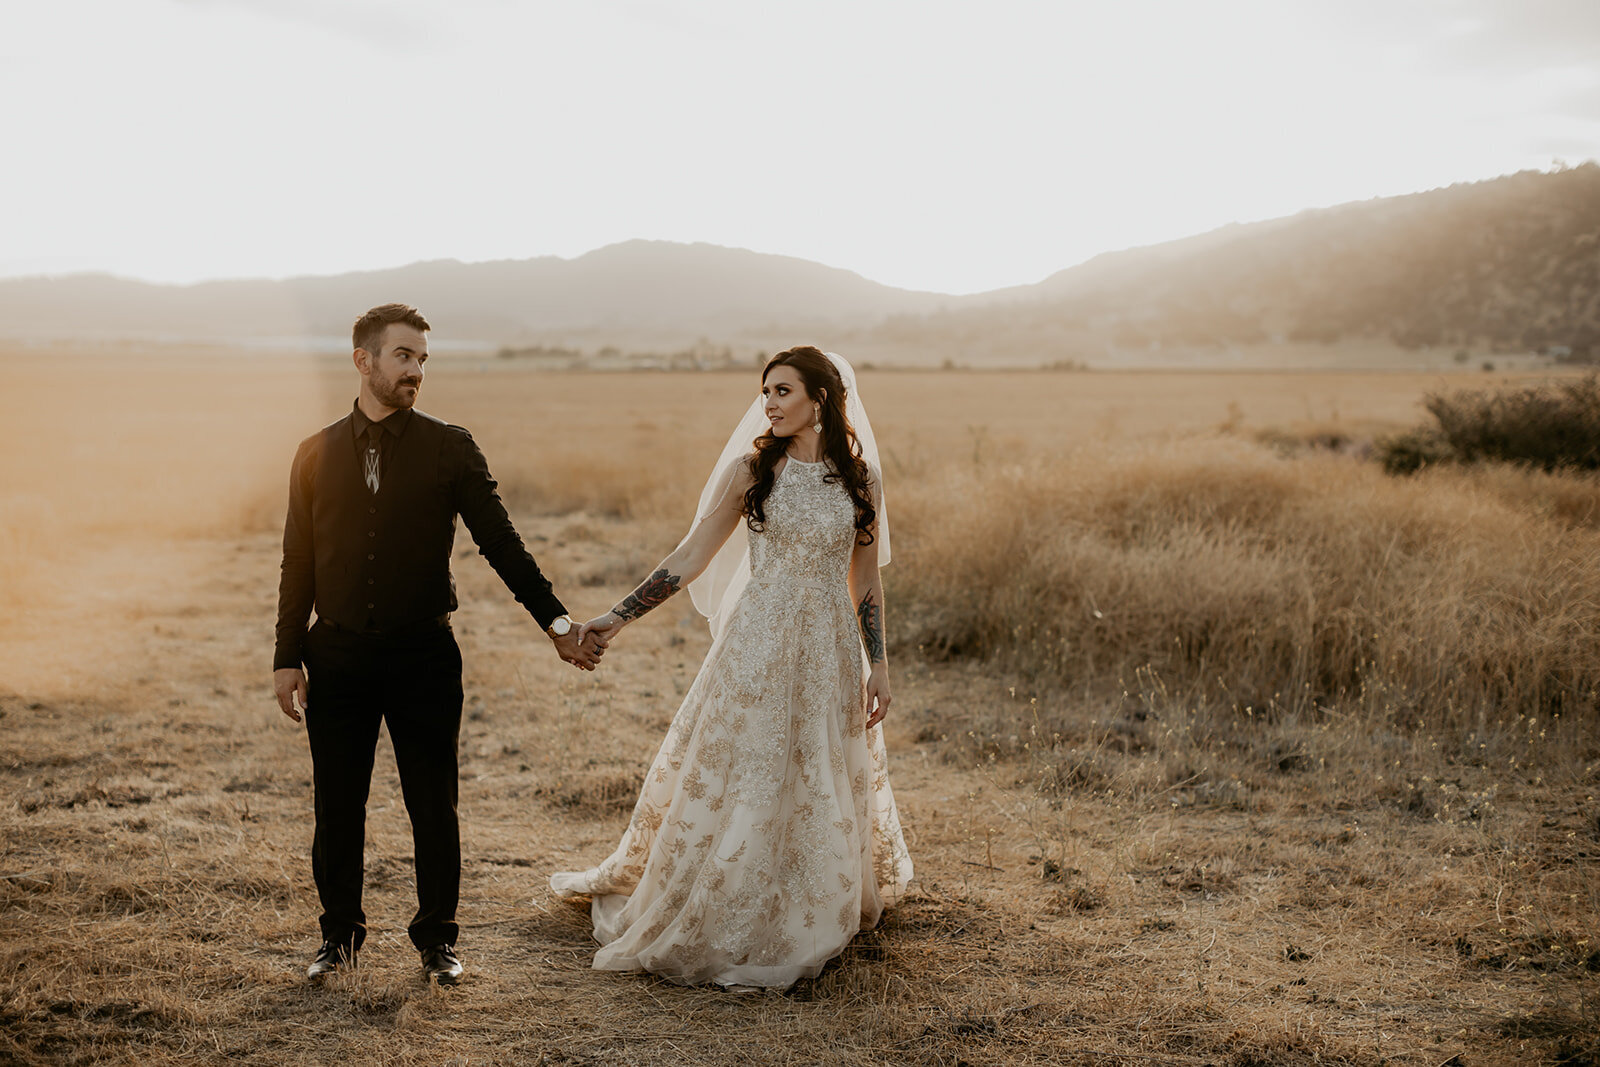 Tehachapi-wedding-sarahandbrentphotography-6